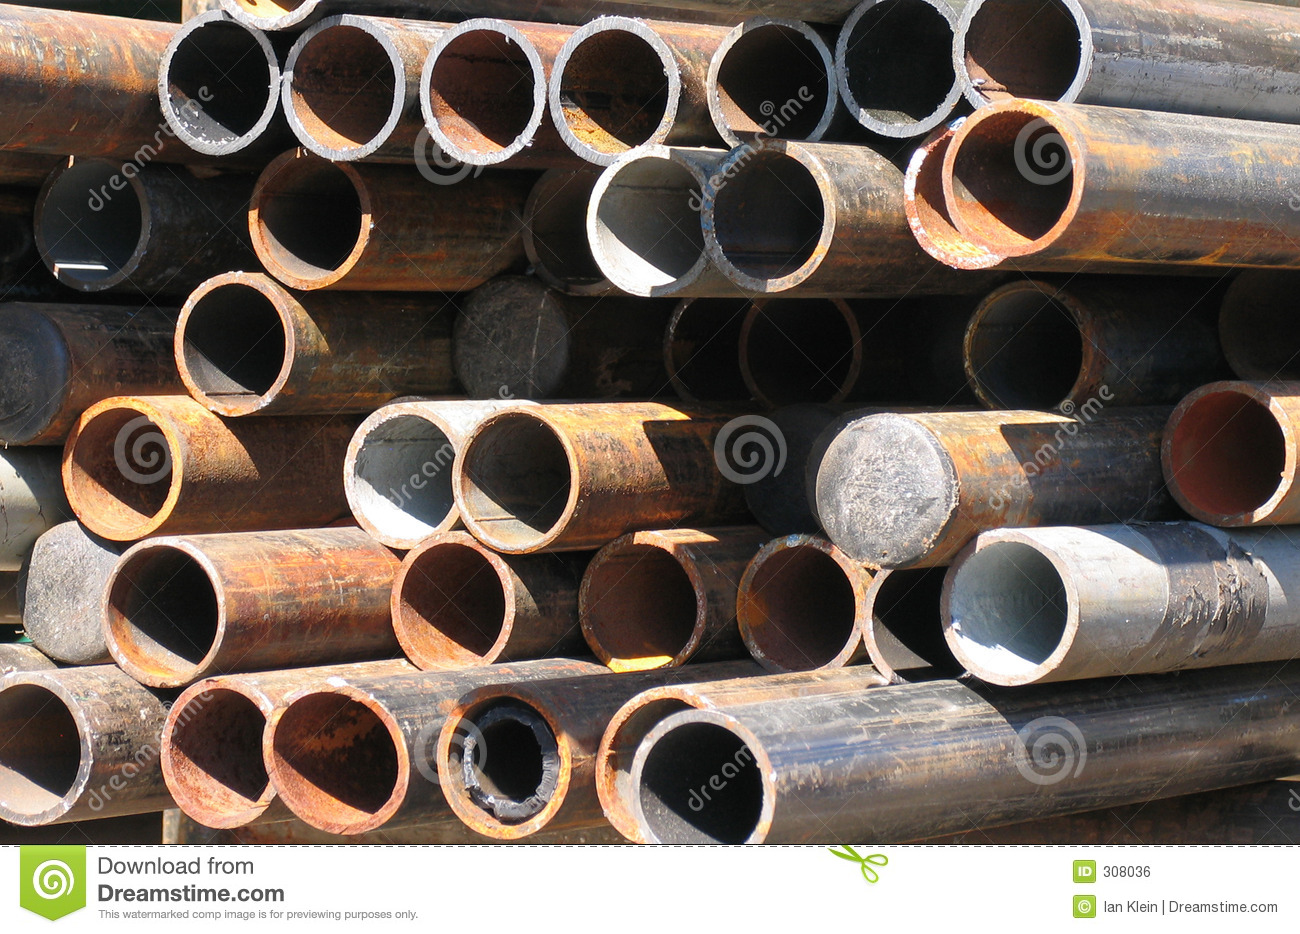 Abstract Arrangement of Corroded Steel Pipes